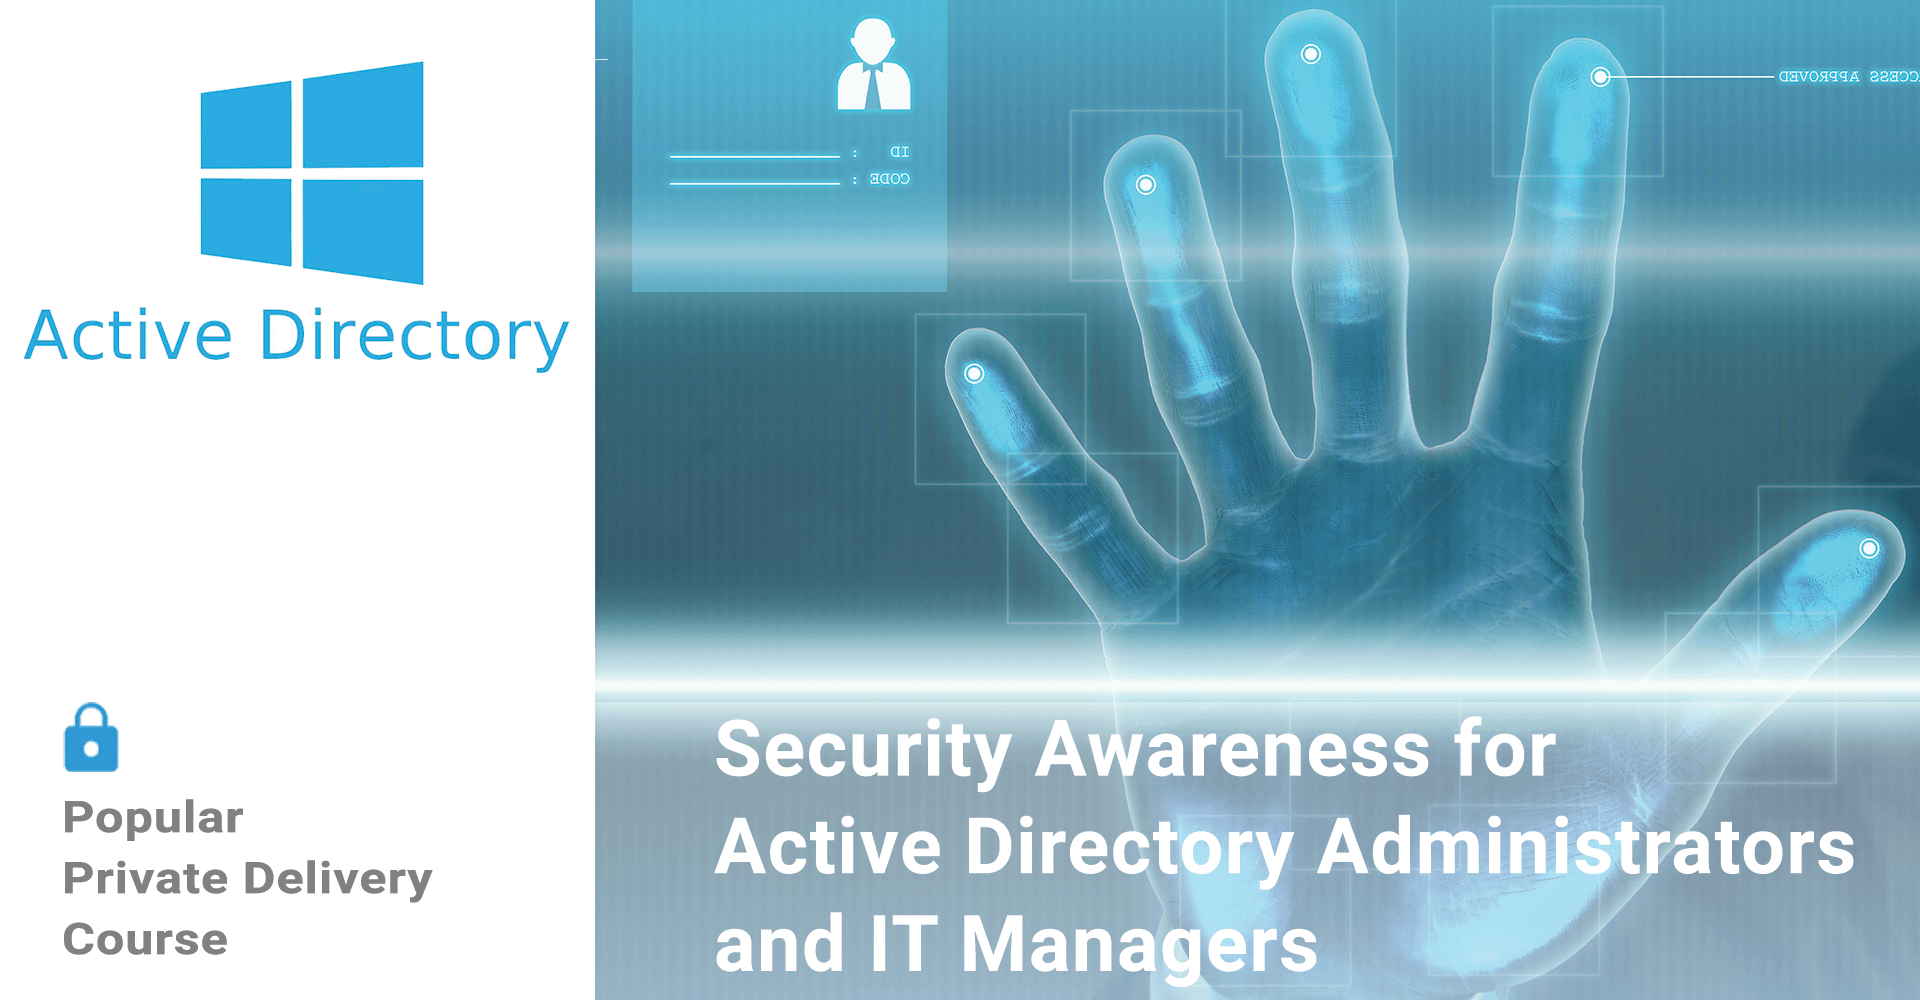 Security Awareness for Active Directory Administrators and IT Managers